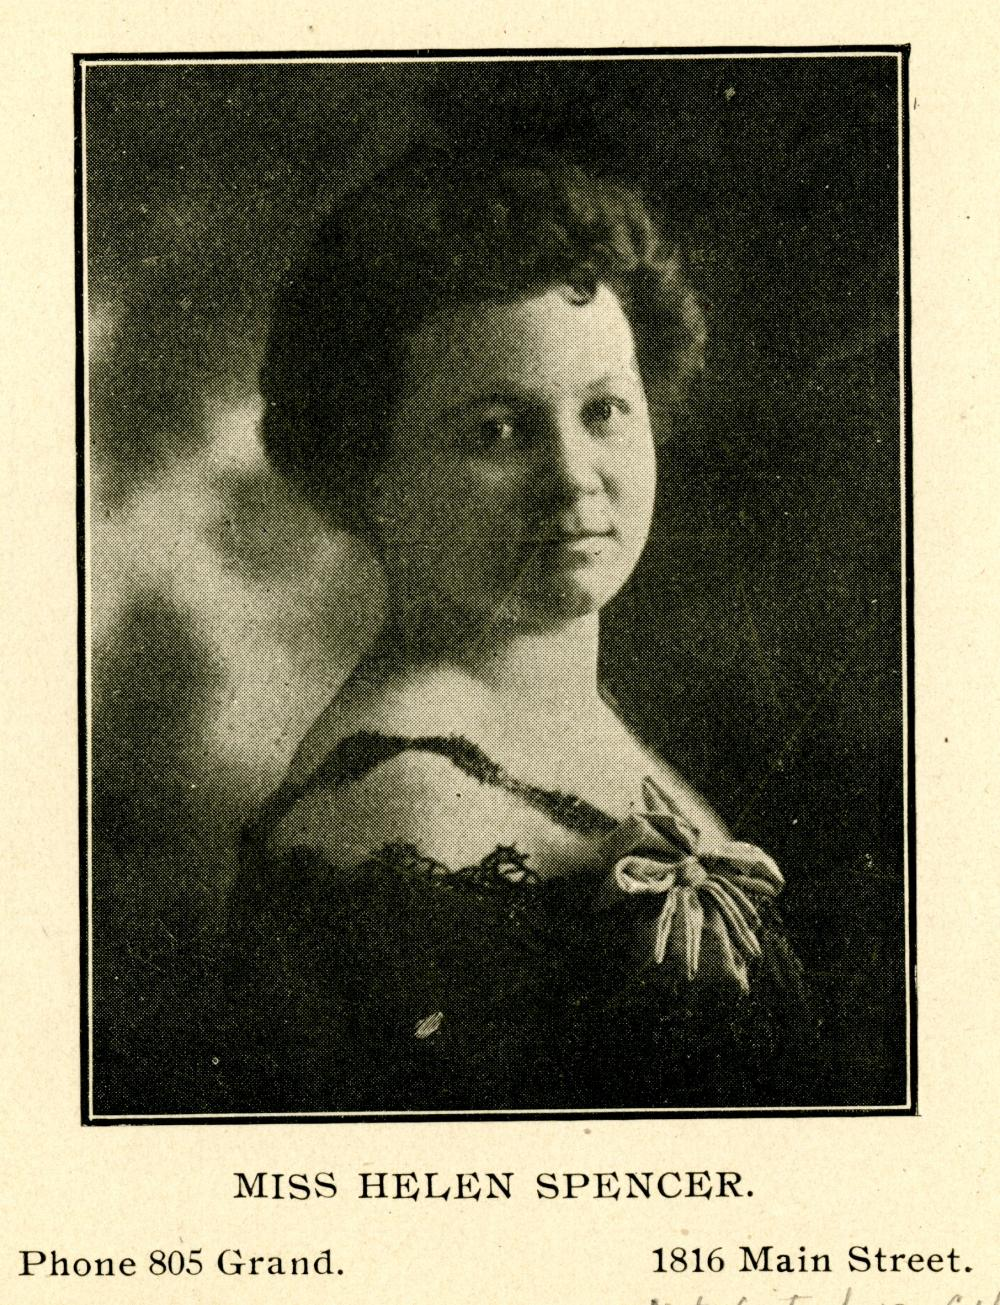 City Directory Portrait of Miss Helen Spencer